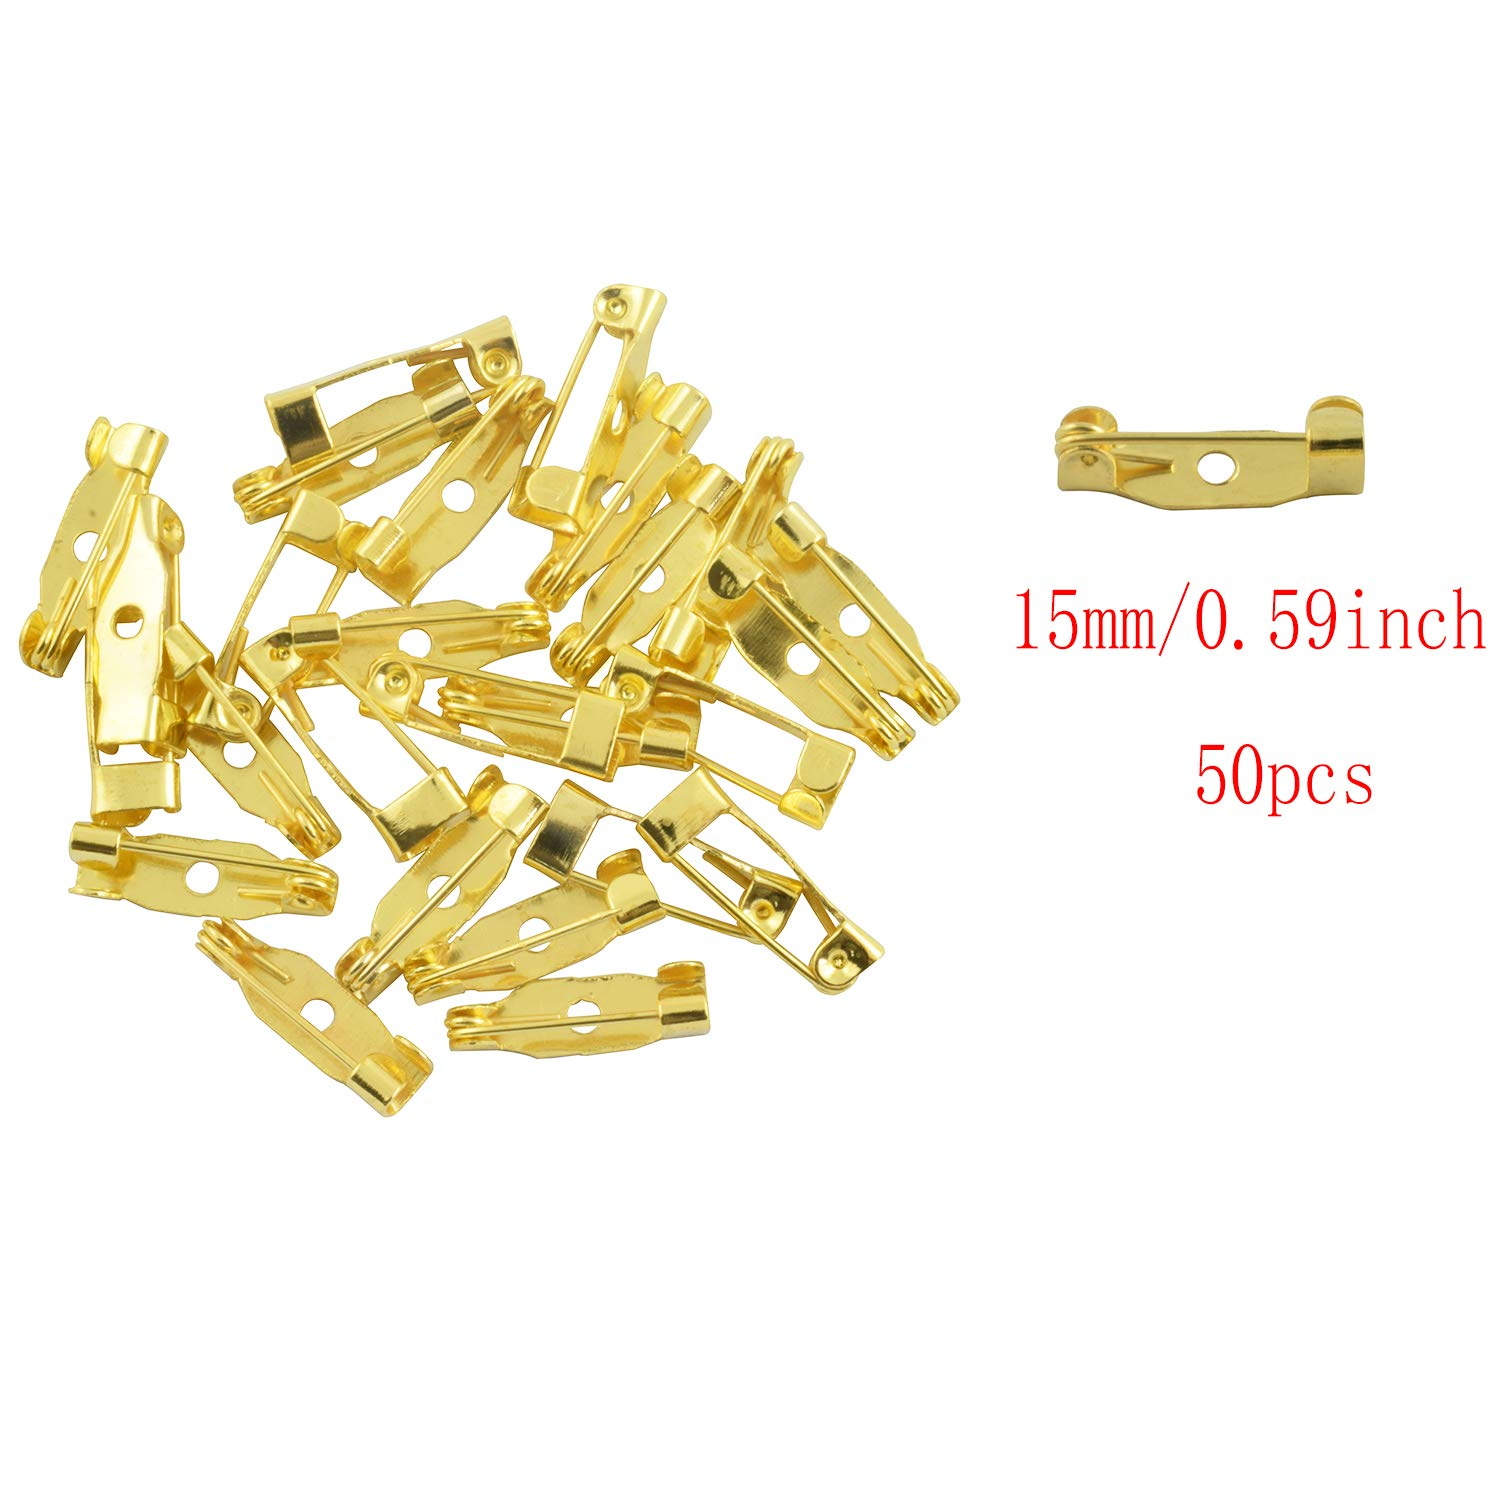 Gold Partstock 150PCS Metal Bar Pins Brooch Back Pin Safety Clasp for Name Tags Jewelry Making DIY Crafts Accessories 1.5//2//2.5cm